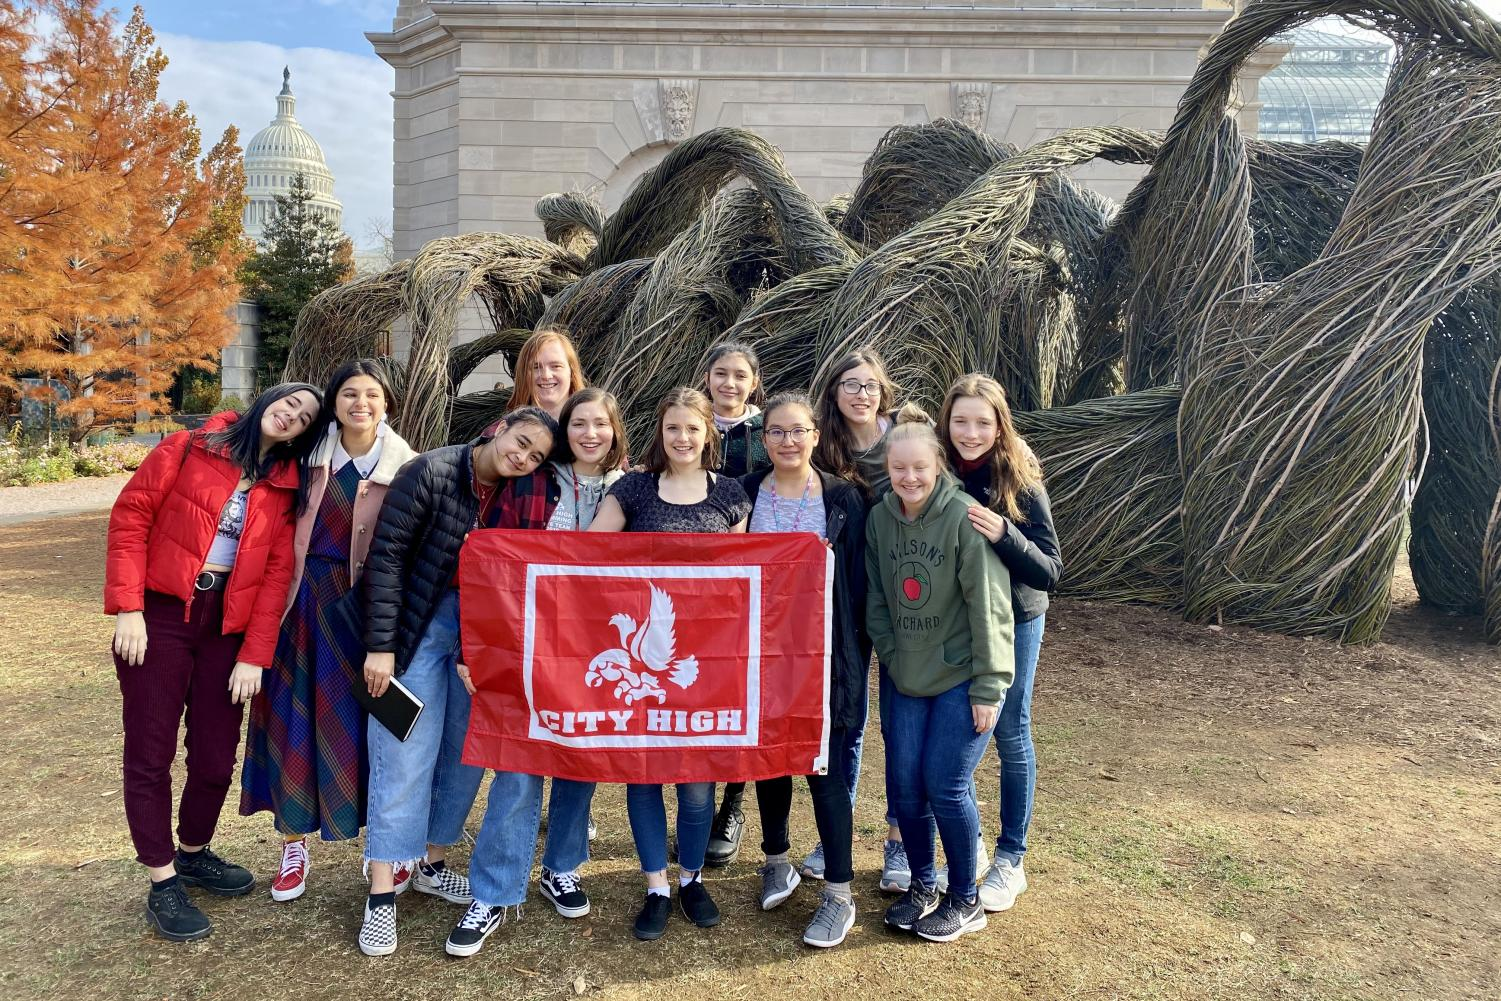 Little Hawk Journalists stand below the Capitol building at the National Botanical Gardens.  Representative Loebsack's assistant guided them on their tour of the Capitol.